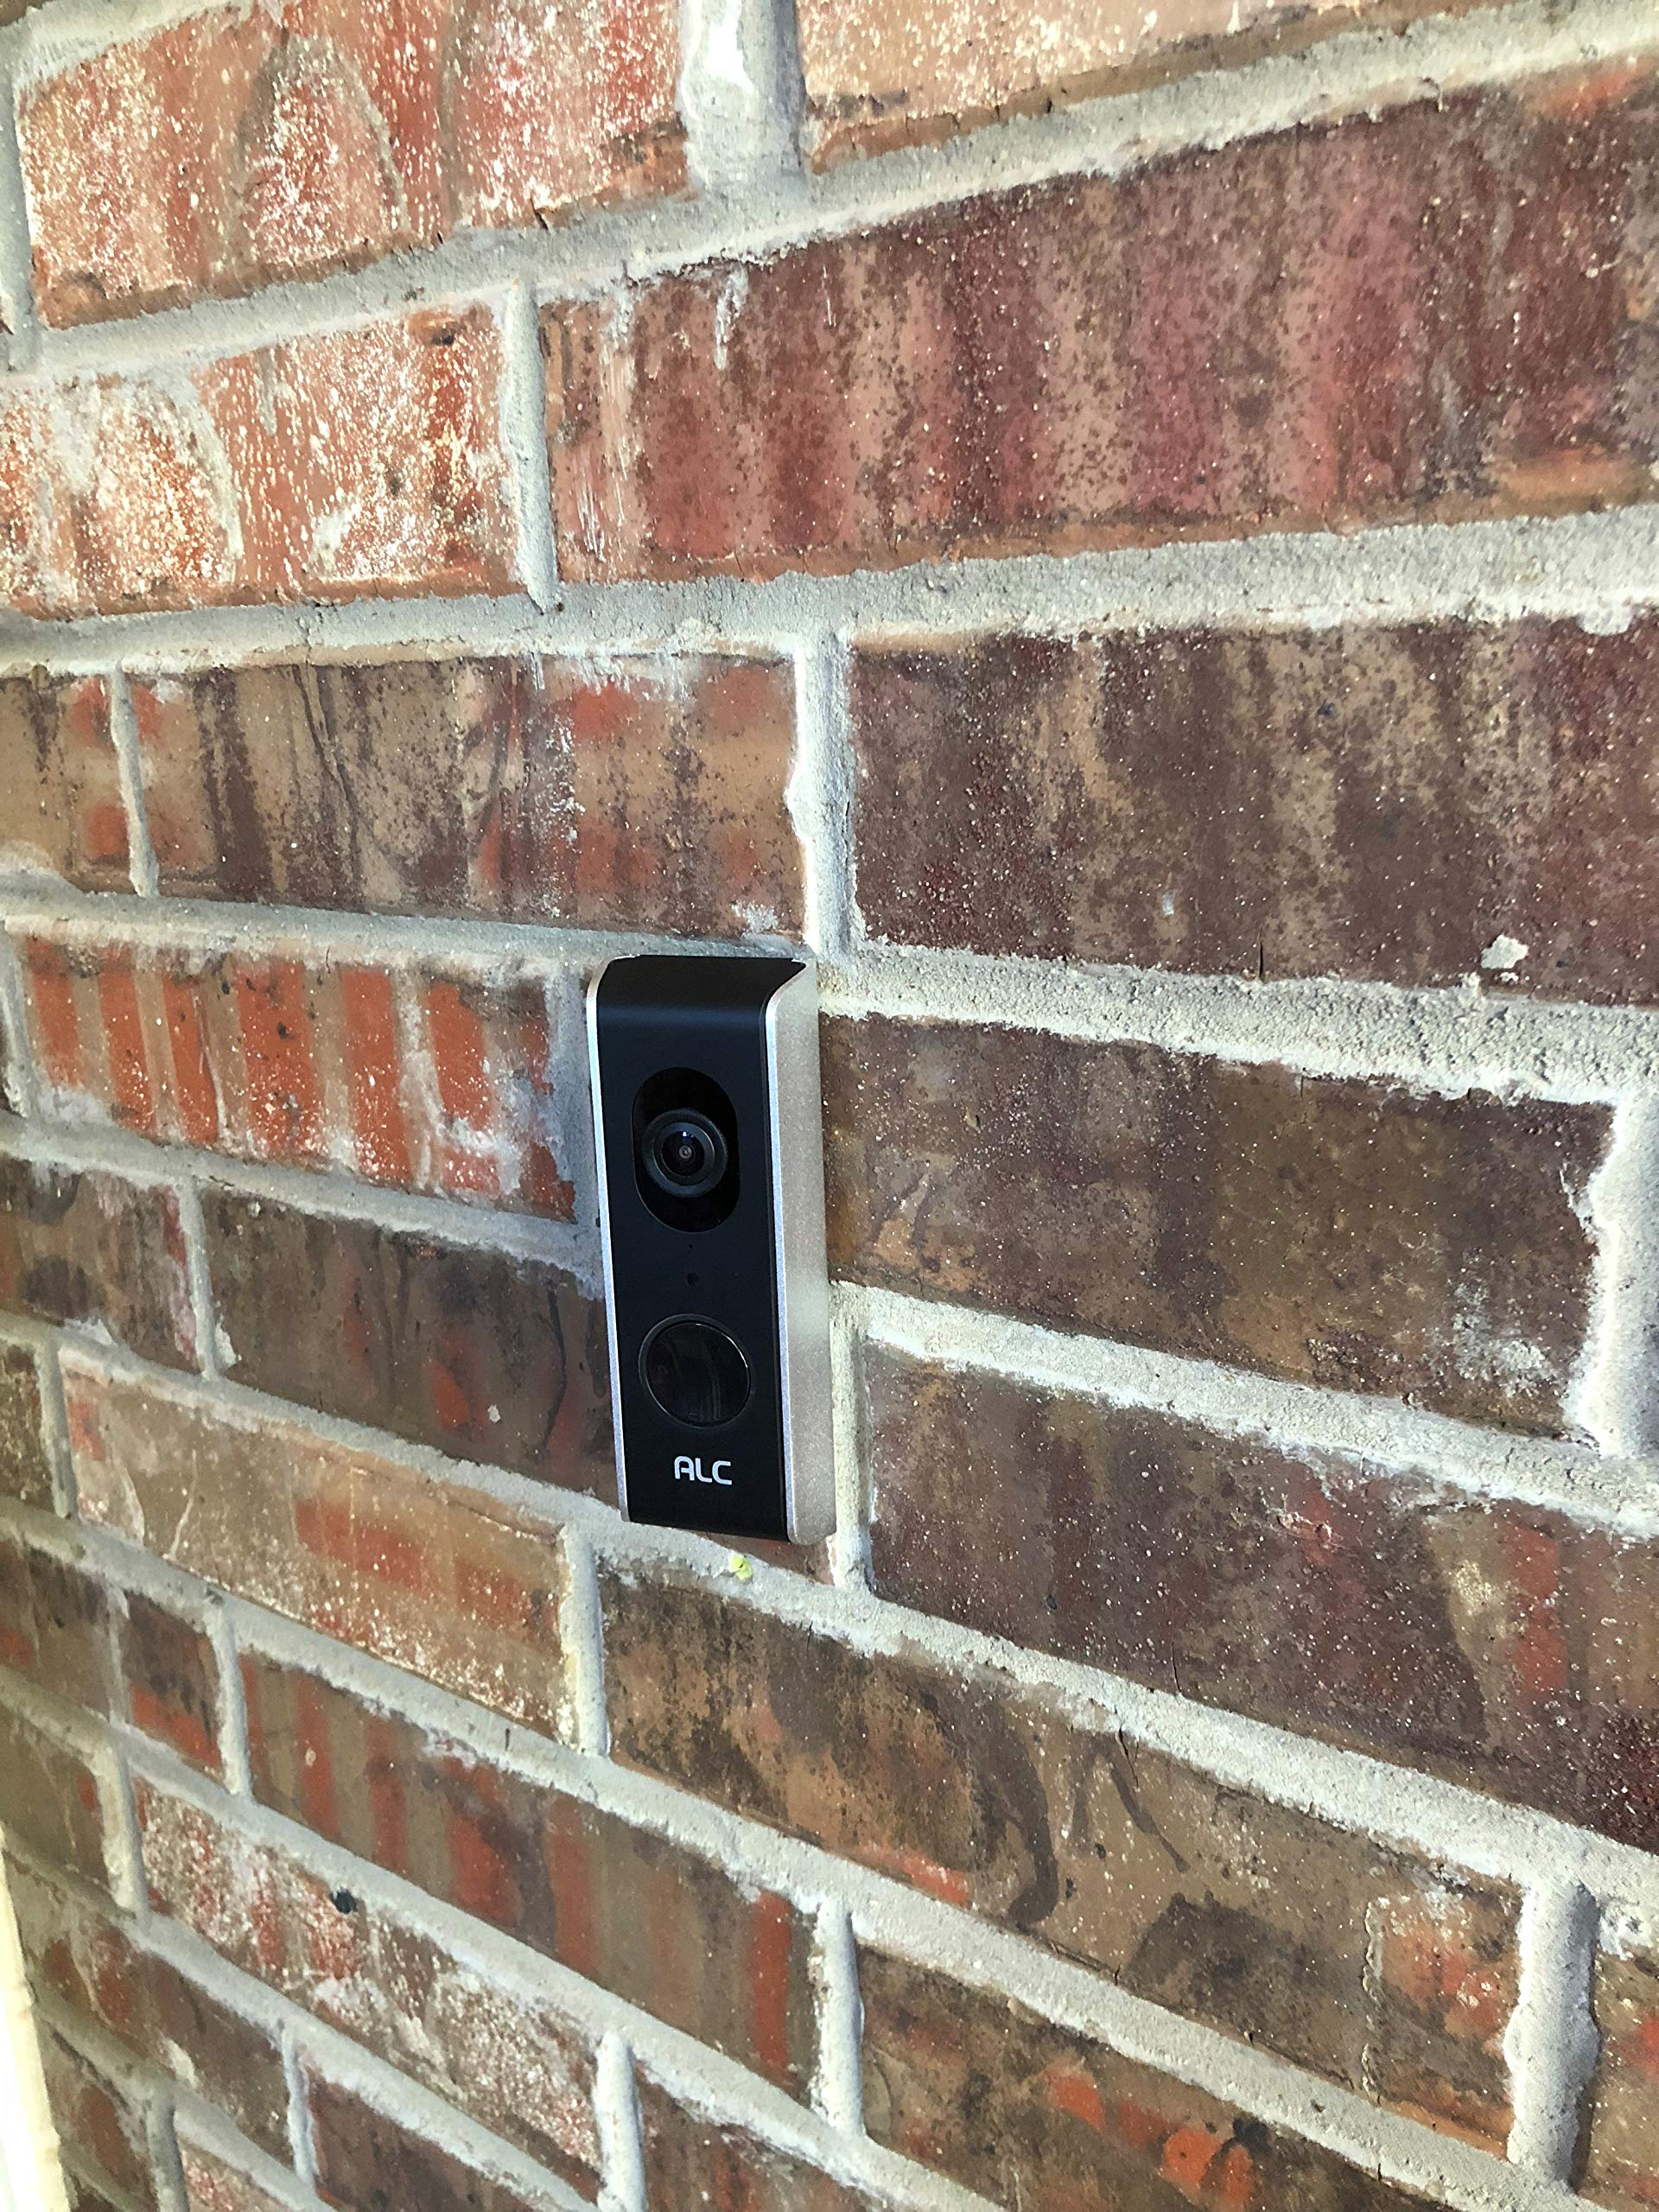 ALC AWF71D Sighthd Video Doorbell with 1080P Full HD Wi-Fi Camera by ALC (Image #6)